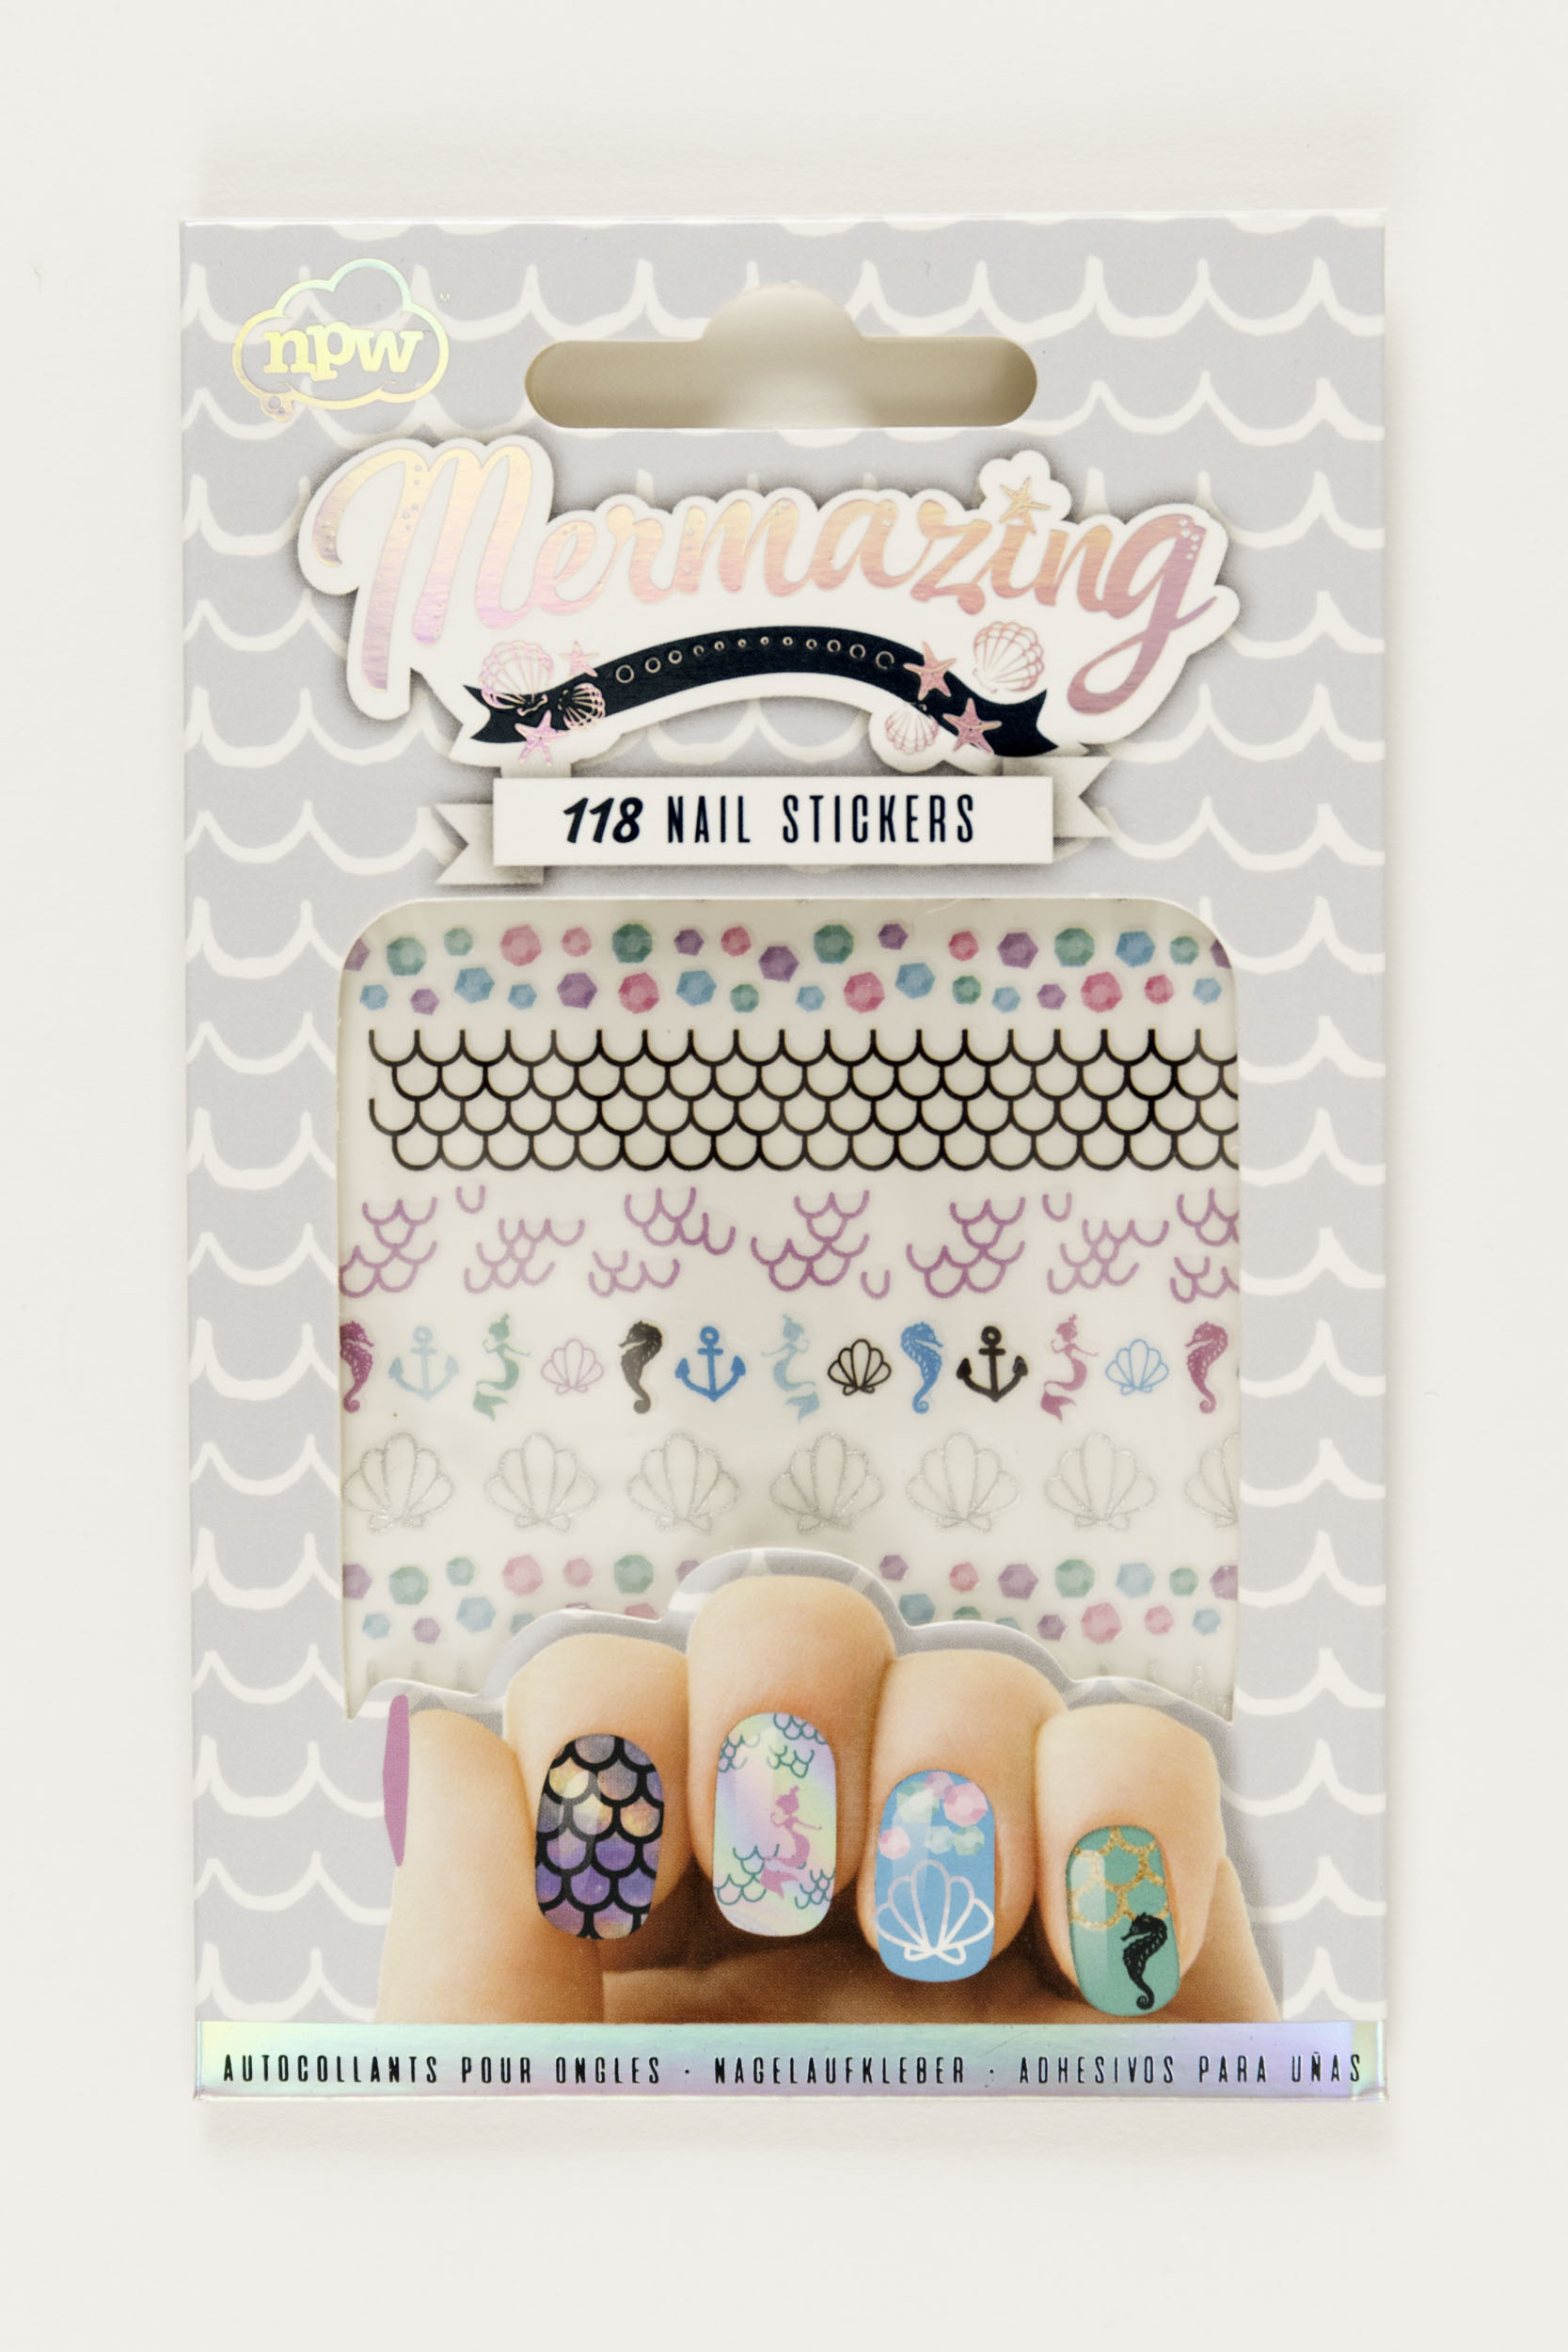 Mermaing Nail Stickers,61178